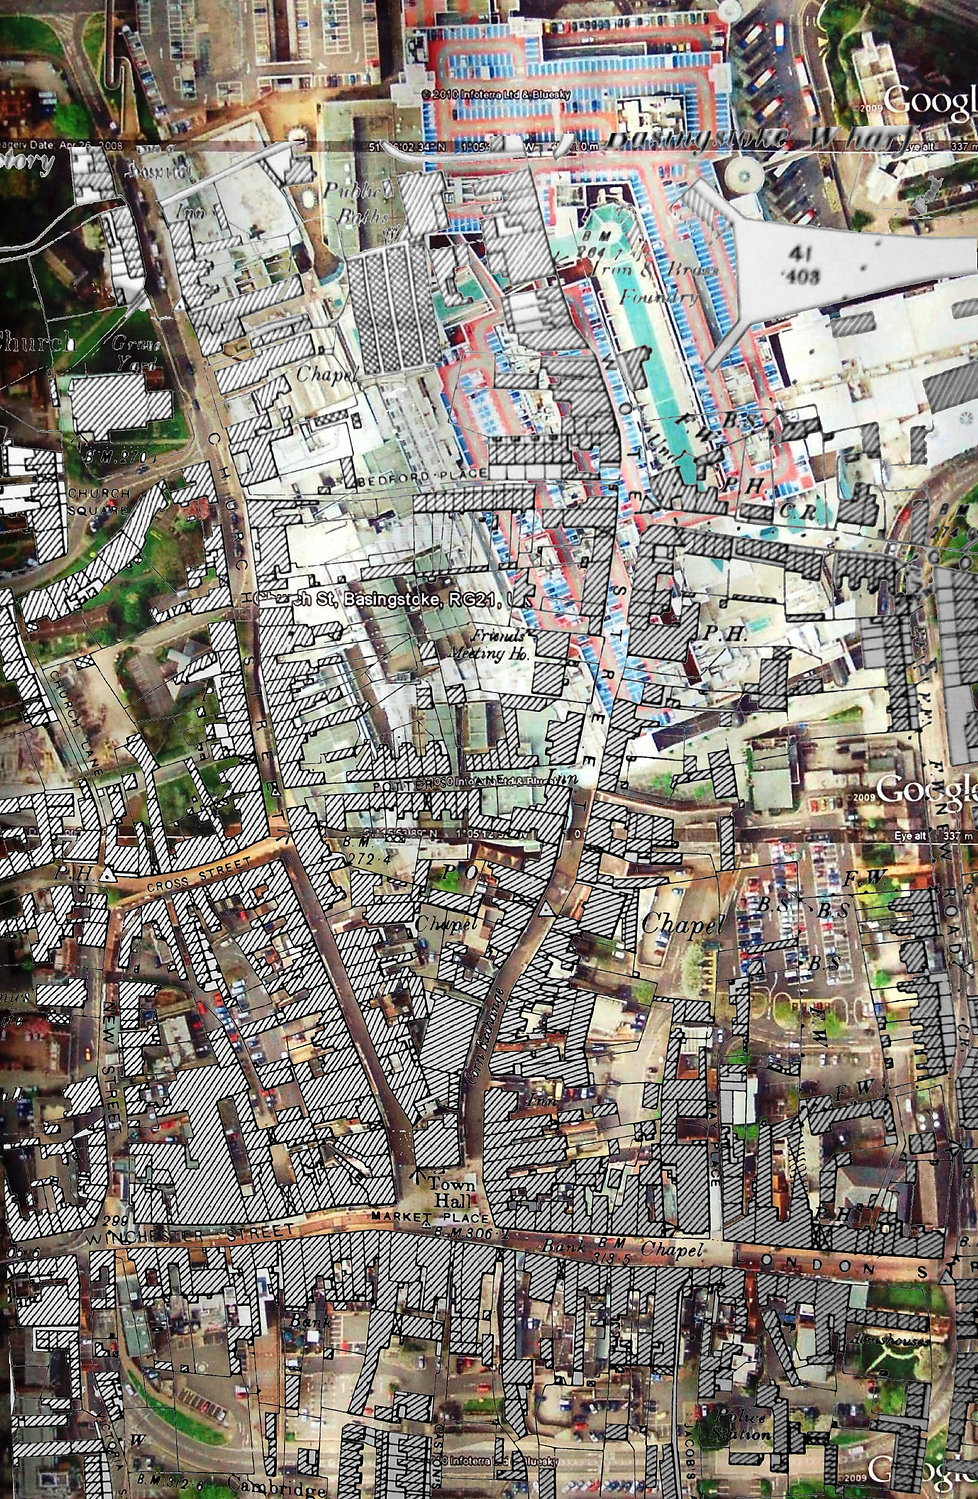 Map of Basingstoke 1910 overlaid on the same area in 2014